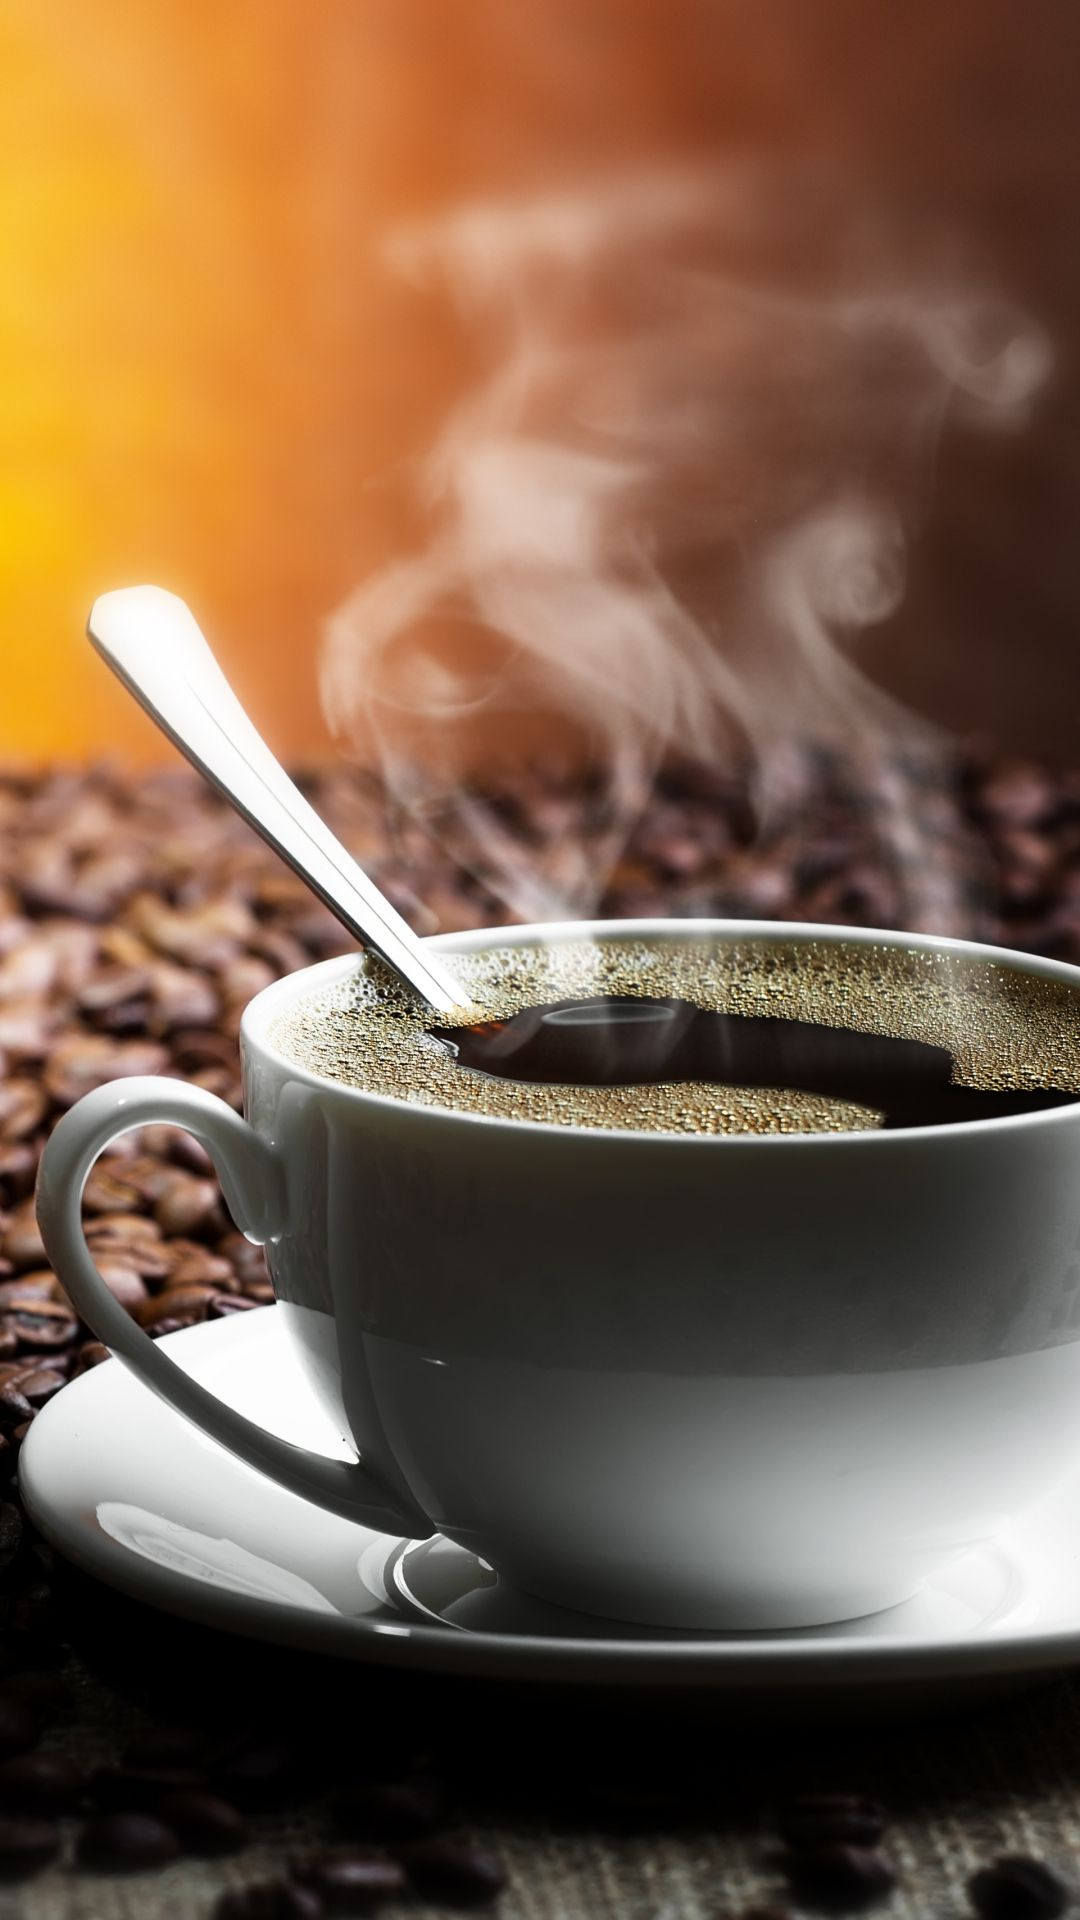 http://www.vactualpapers.com/gallery/a-cup-of-coffee-mobile-hd-wallpaper | Mobile Wallpapers ...